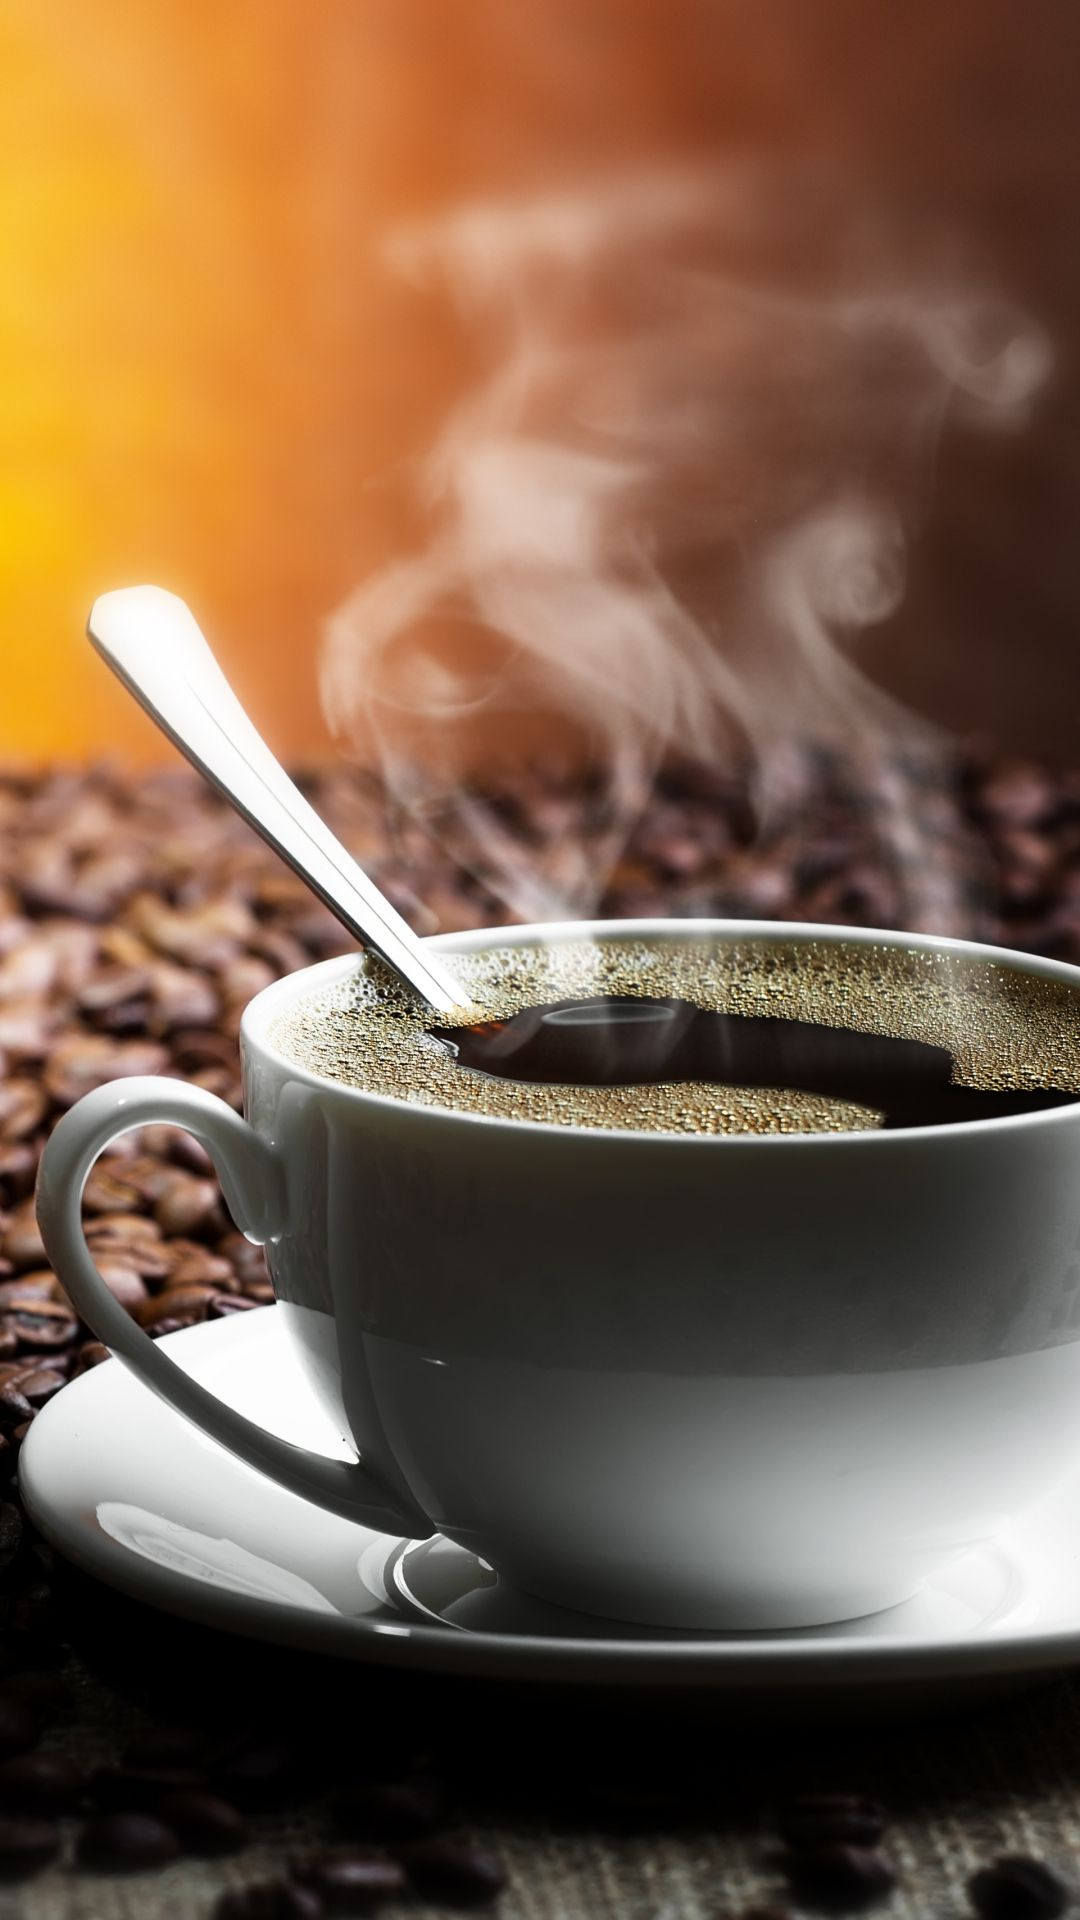 http://www.vactualpapers.com/gallery/a-cup-of-coffee-mobile-hd-wallpaper | Mobile Wallpapers ...